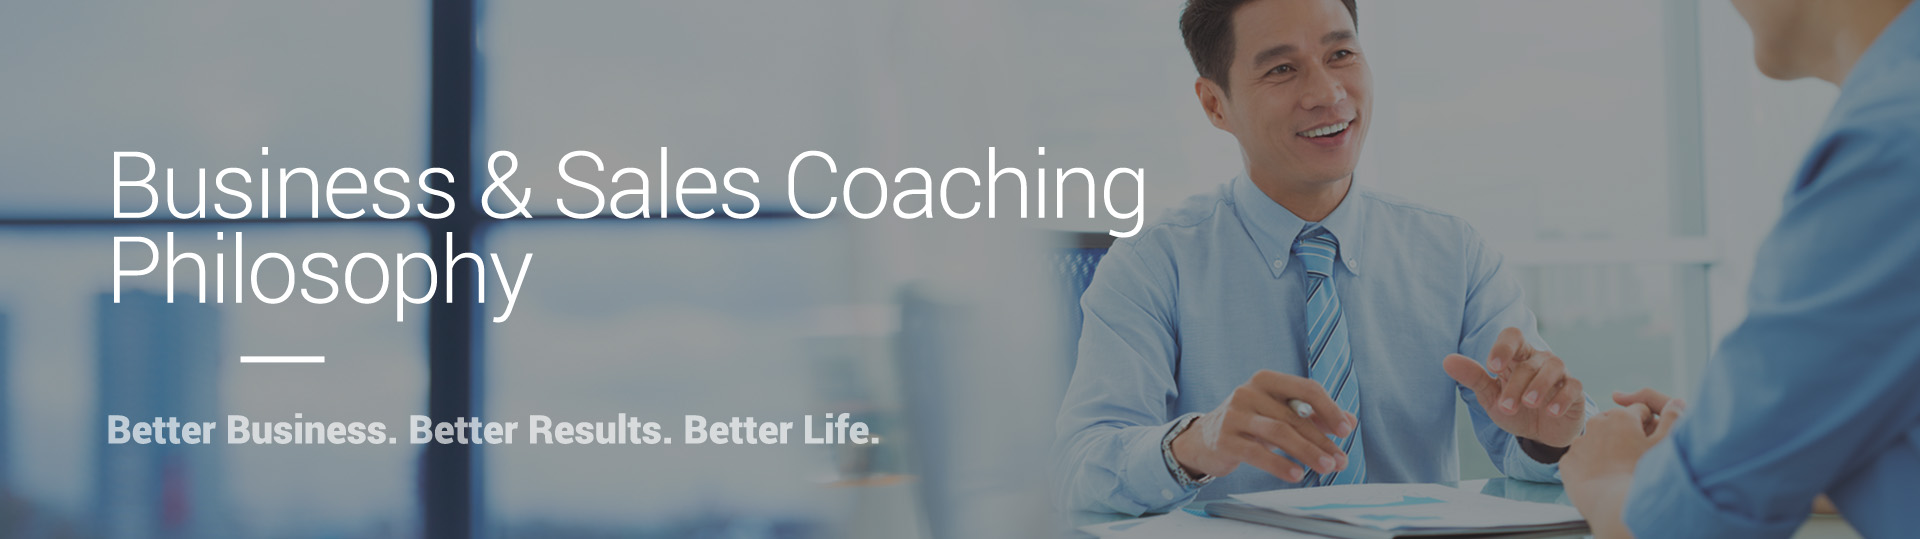 Business Coaching Philosophy